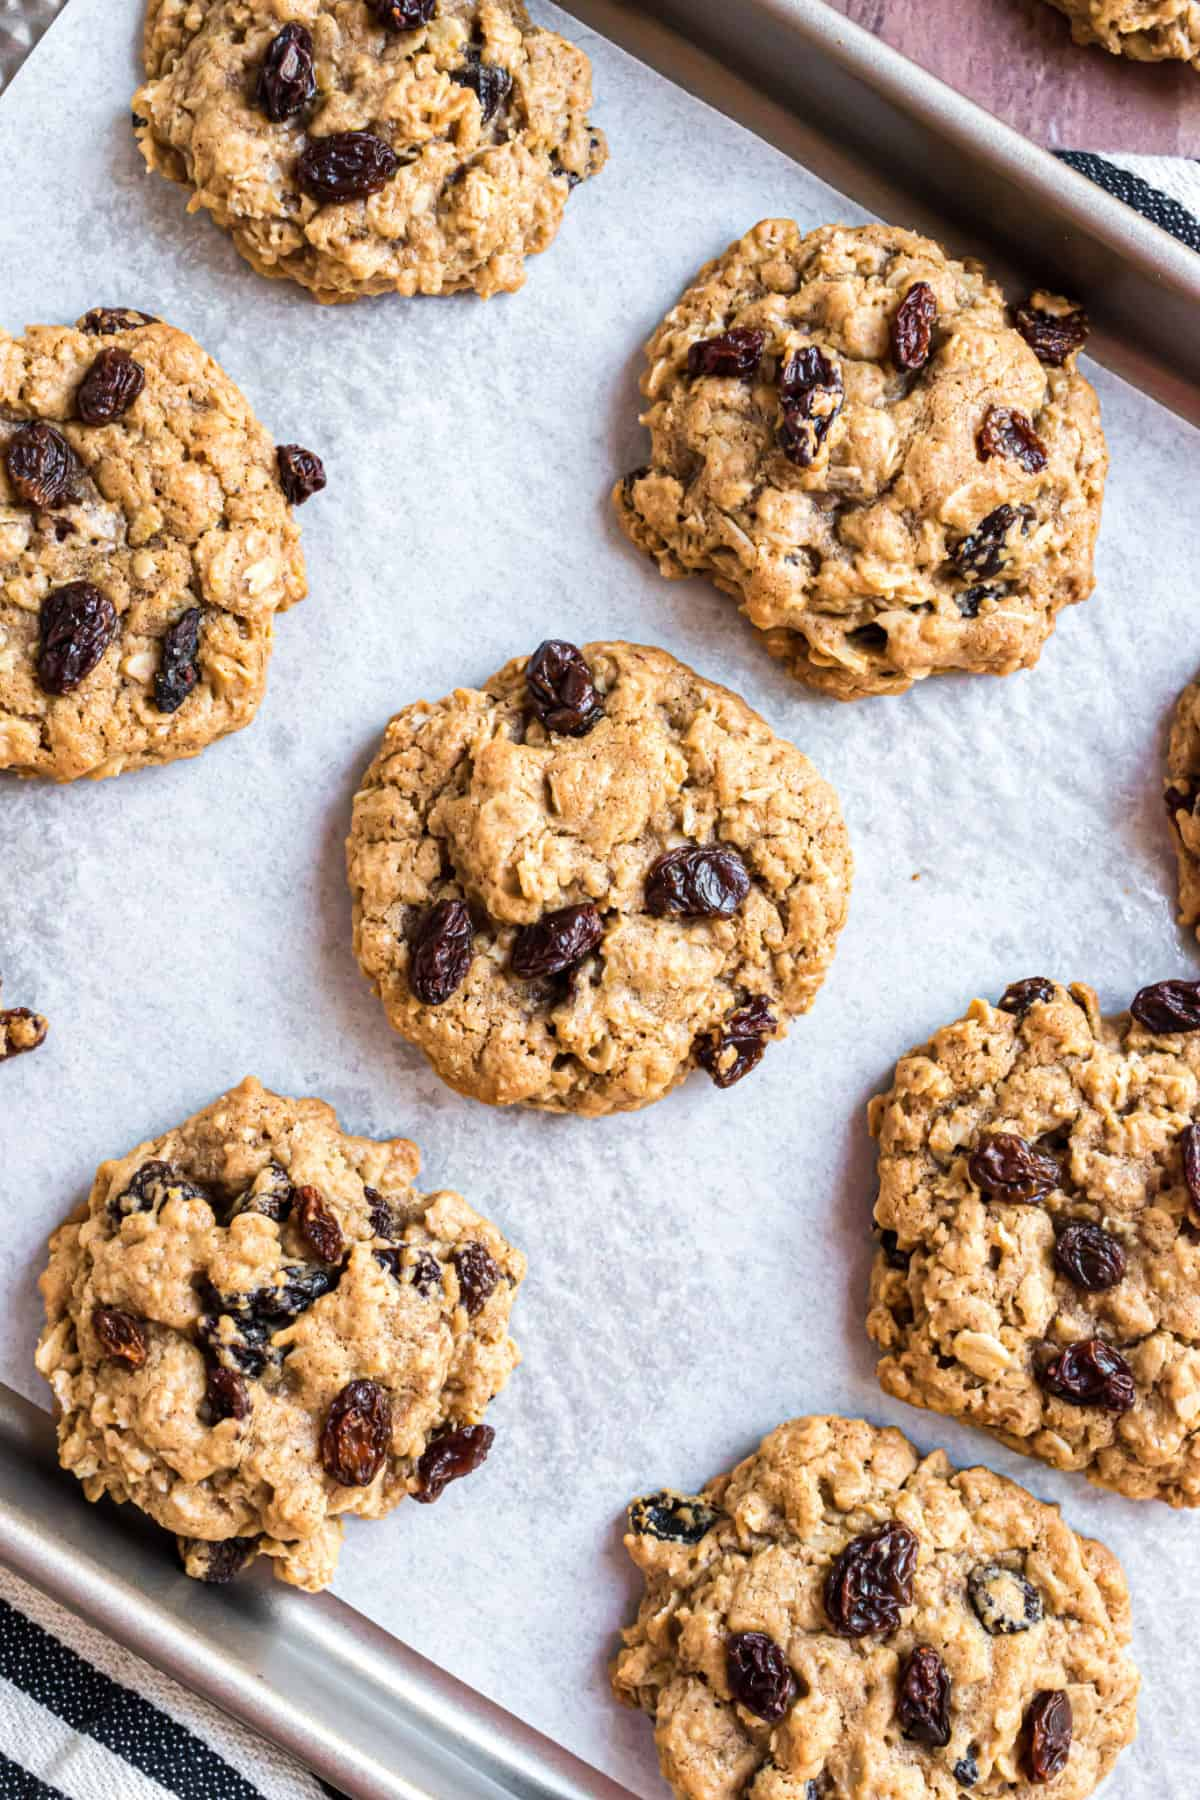 Soft and chewy oatmeal raisin cookies on a parchment paper lined cookie sheet.